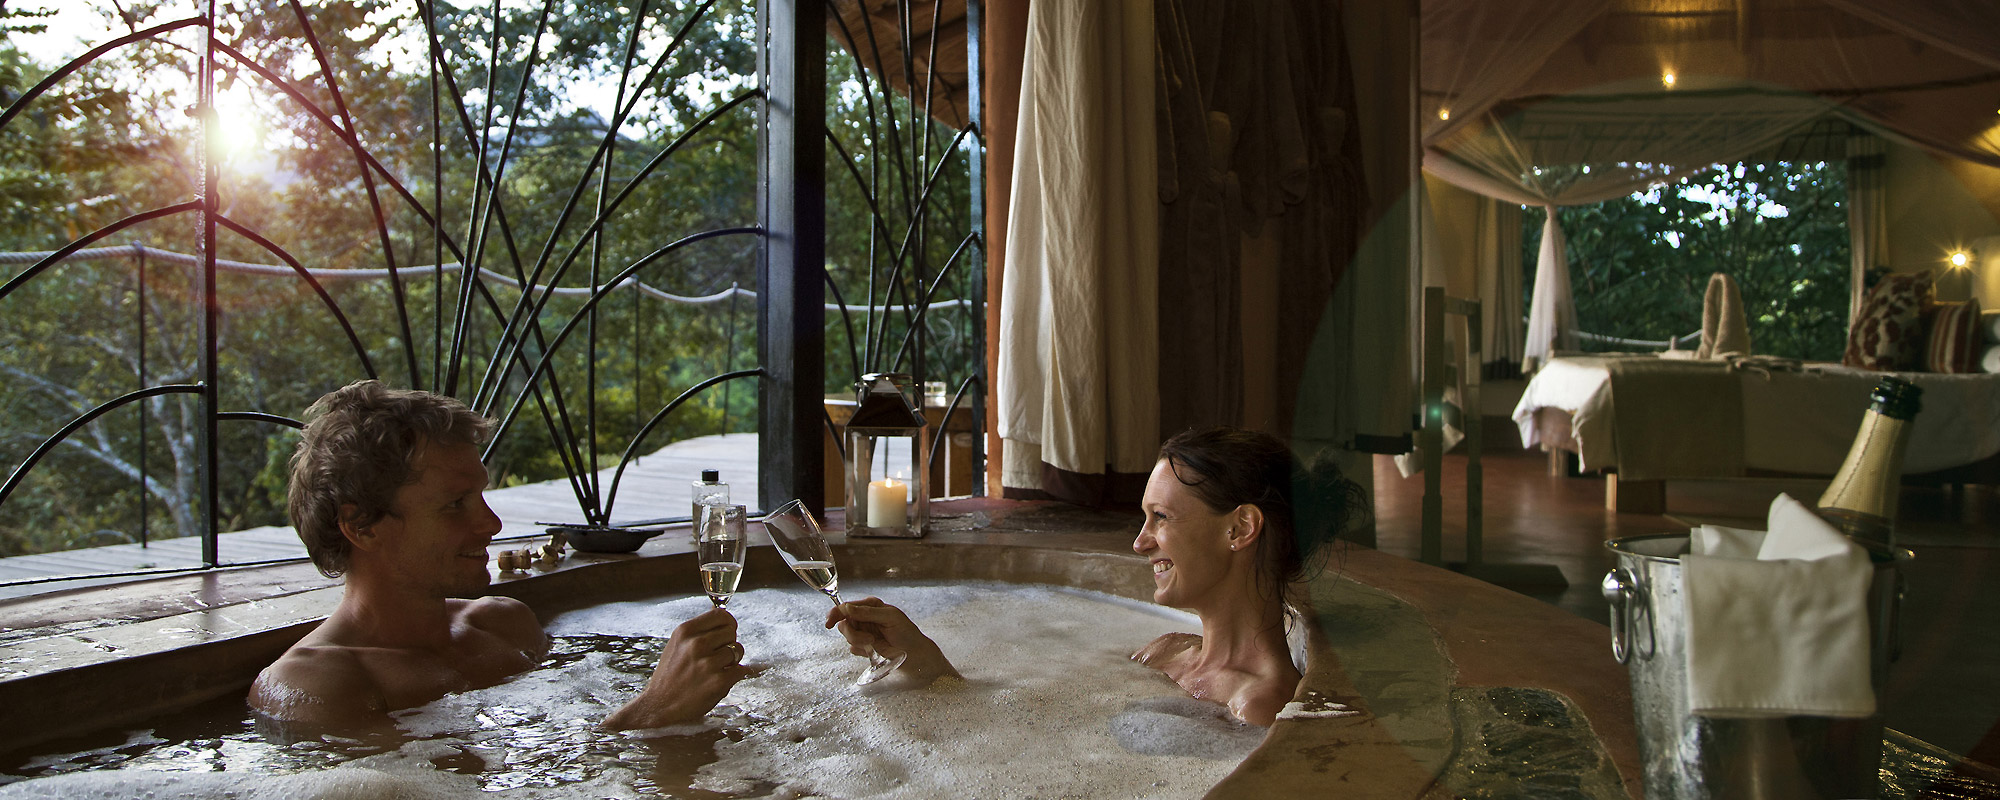 Luxury Safari Honeymoon